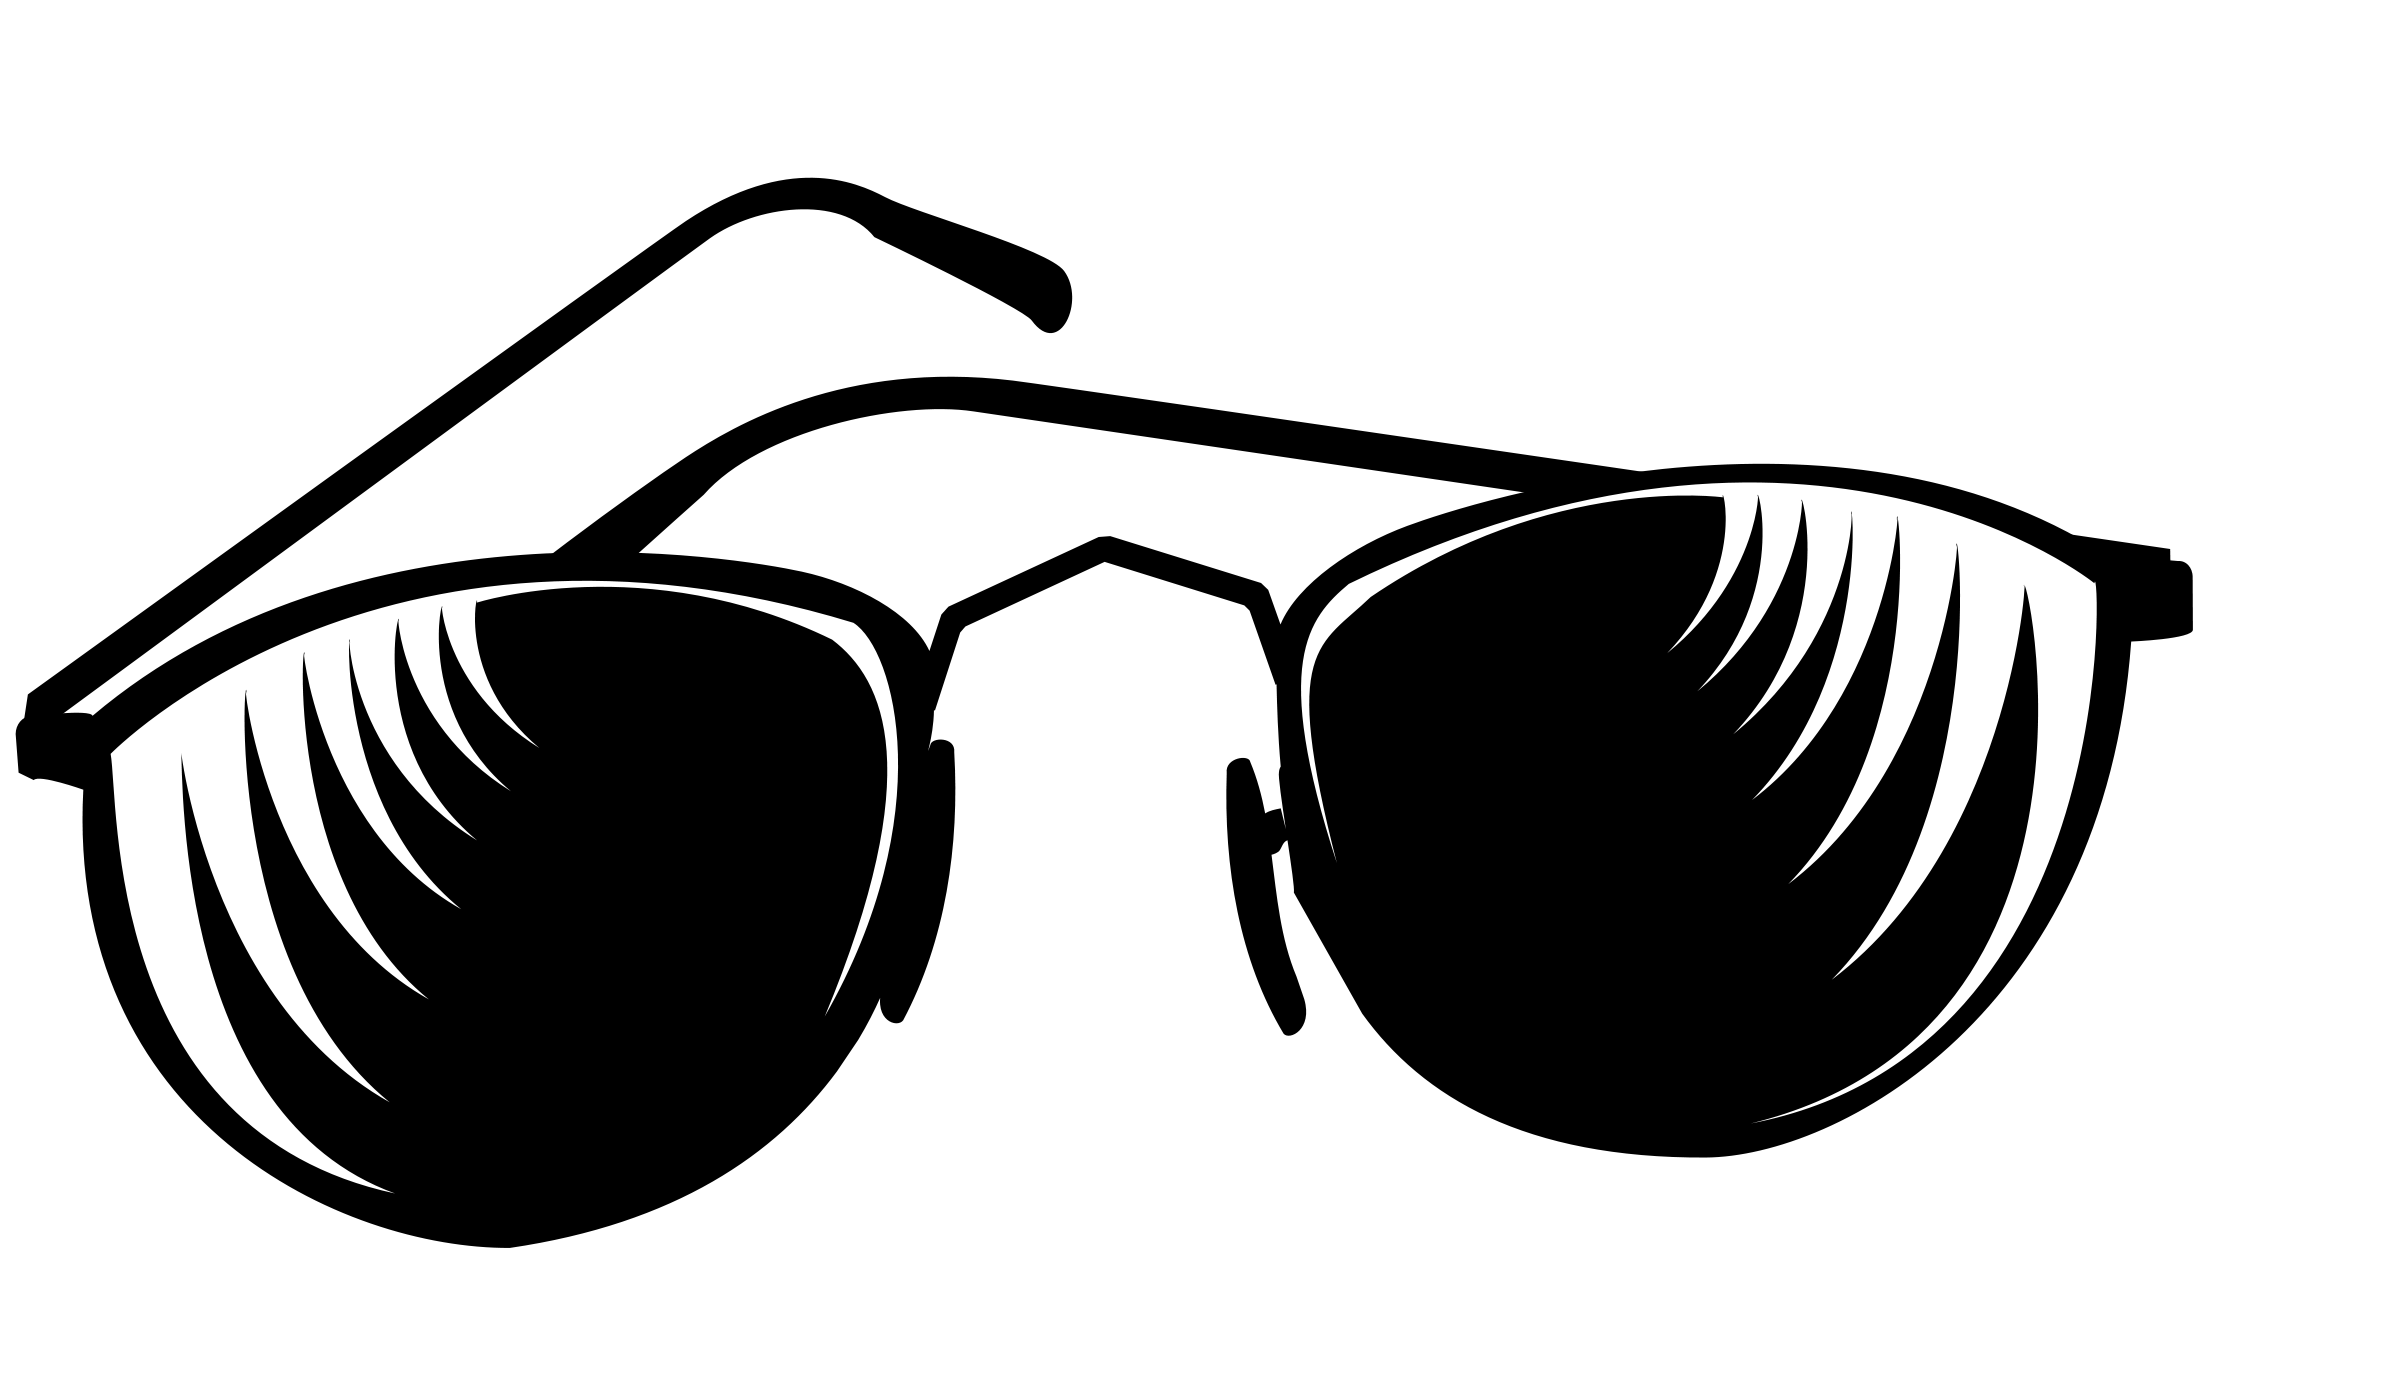 Sunglasses clip art black and white free clipart